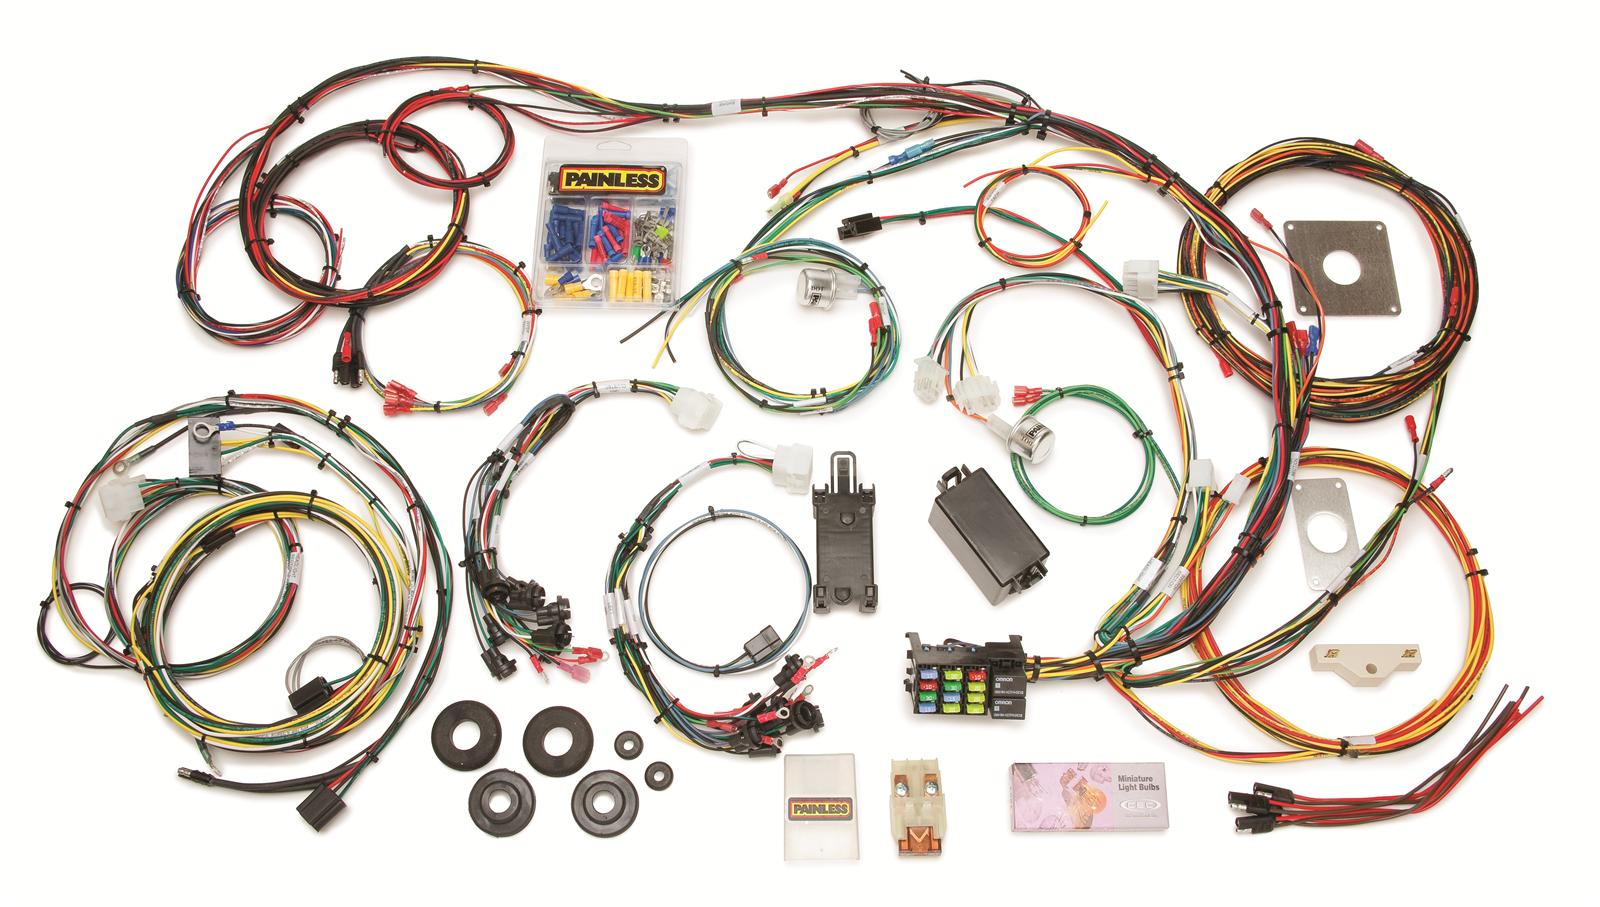 1966 Mustang Wiring Harness Kit - Wiring Diagram List on ford f250 control module, ford f250 control box, hummer h2 wiring harness, ford f250 overdrive switch, ford f250 switches, ford f250 temp sensor, pontiac grand am wiring harness, ford f250 air filter housing, ford f250 distributor, ford f250 seat, ford f250 hub caps, ford f250 ignition module, ford f250 neutral safety switch, ford f250 electrical schematic, suzuki grand vitara wiring harness, ford f250 master cylinder, honda s2000 wiring harness, dodge ram 2500 wiring harness, kia sportage wiring harness, ford f250 fuel pressure regulator,